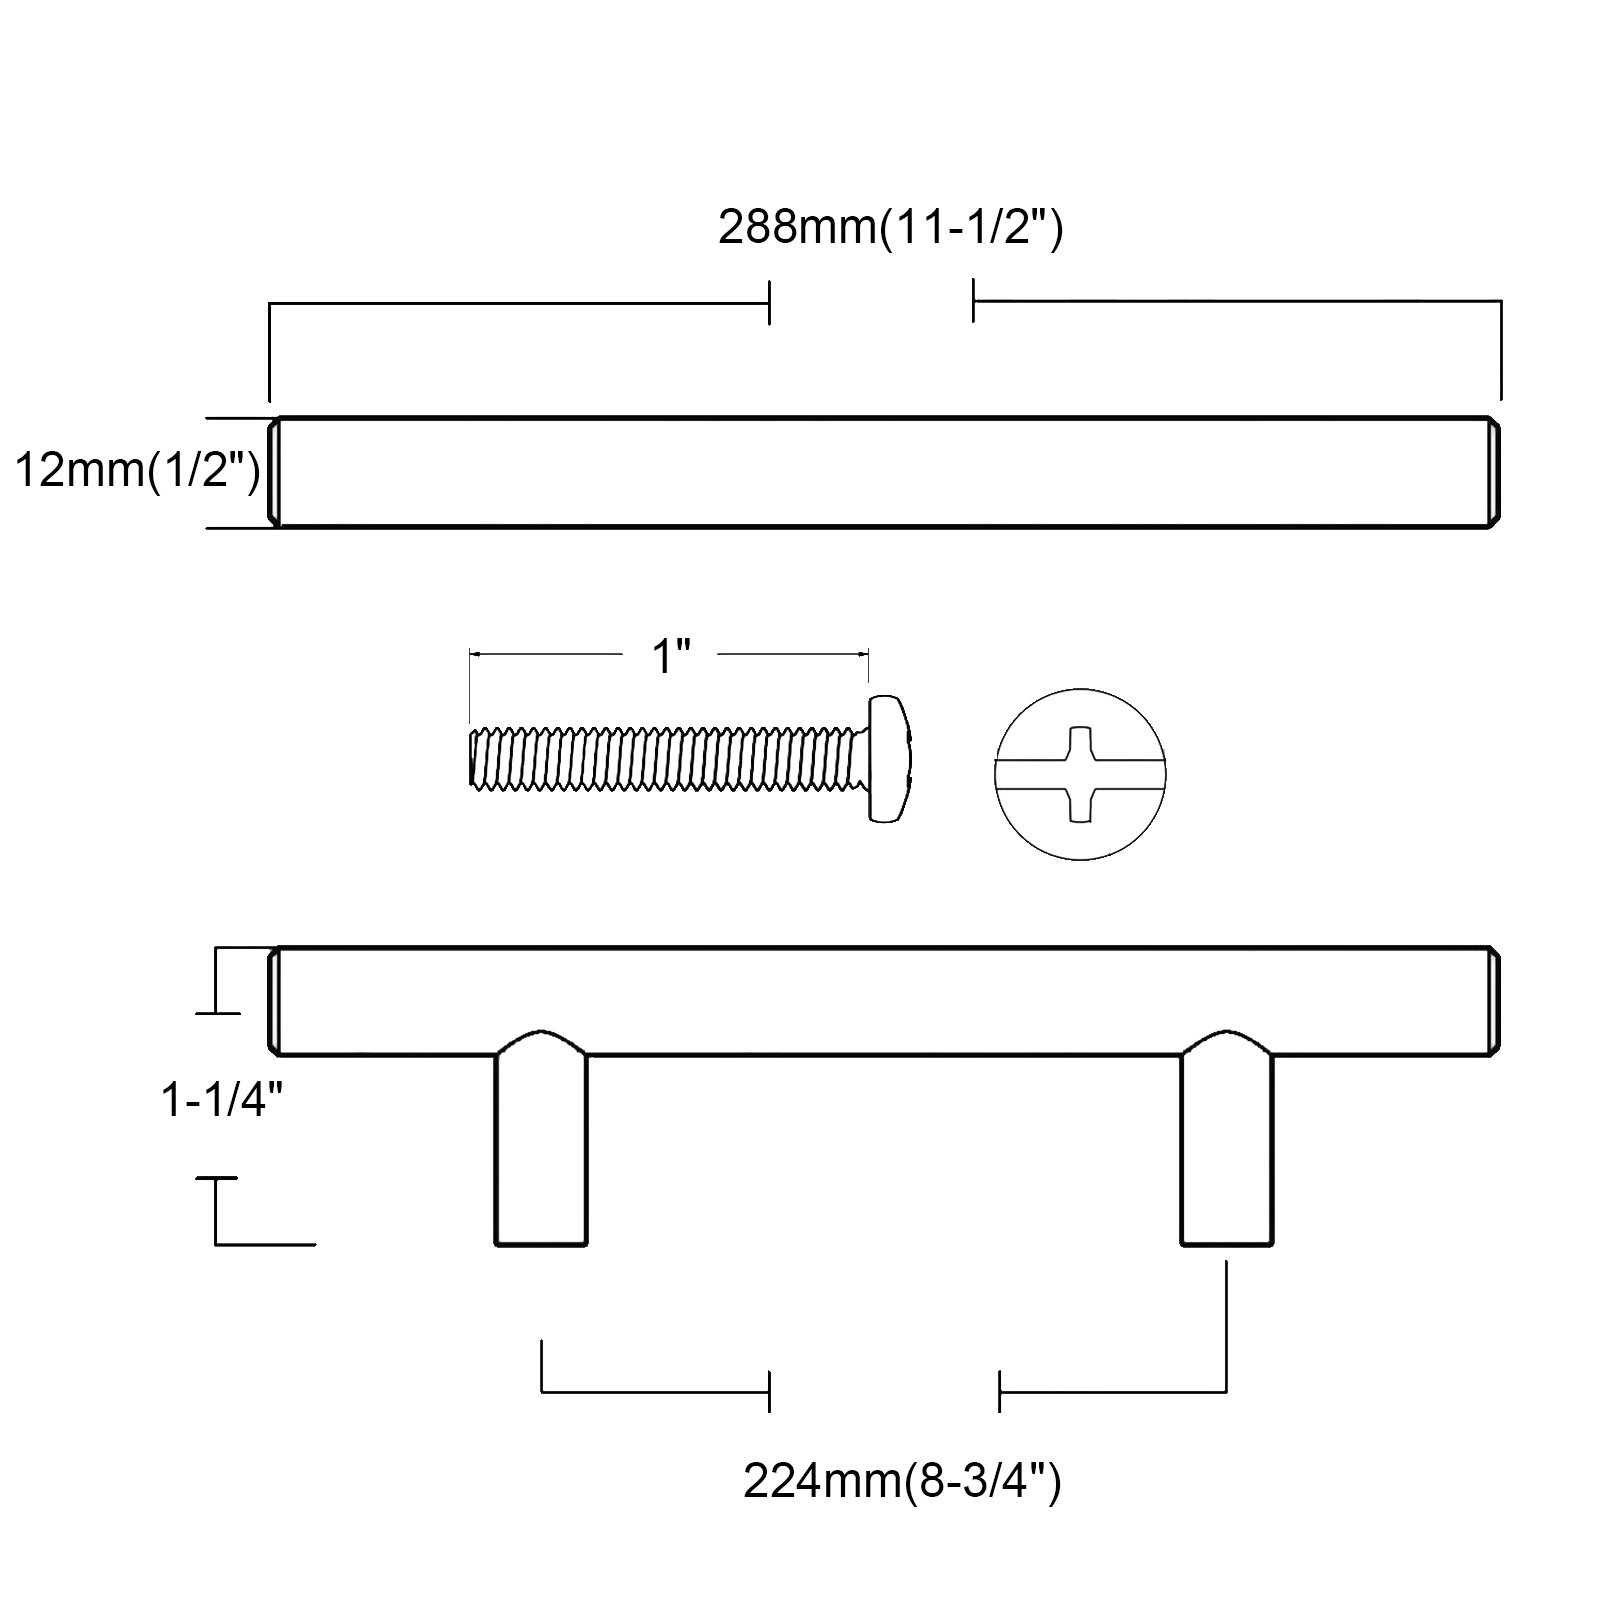 Probrico Modern Cabinet Hardware Dresser Cupboard Handle Pull White Kitchen Cabinet T Bar Knobs Stainless Steel- 12mm Diameter - 8-3/4 Hole Spacing - 5 Pack by Probrico (Image #5)